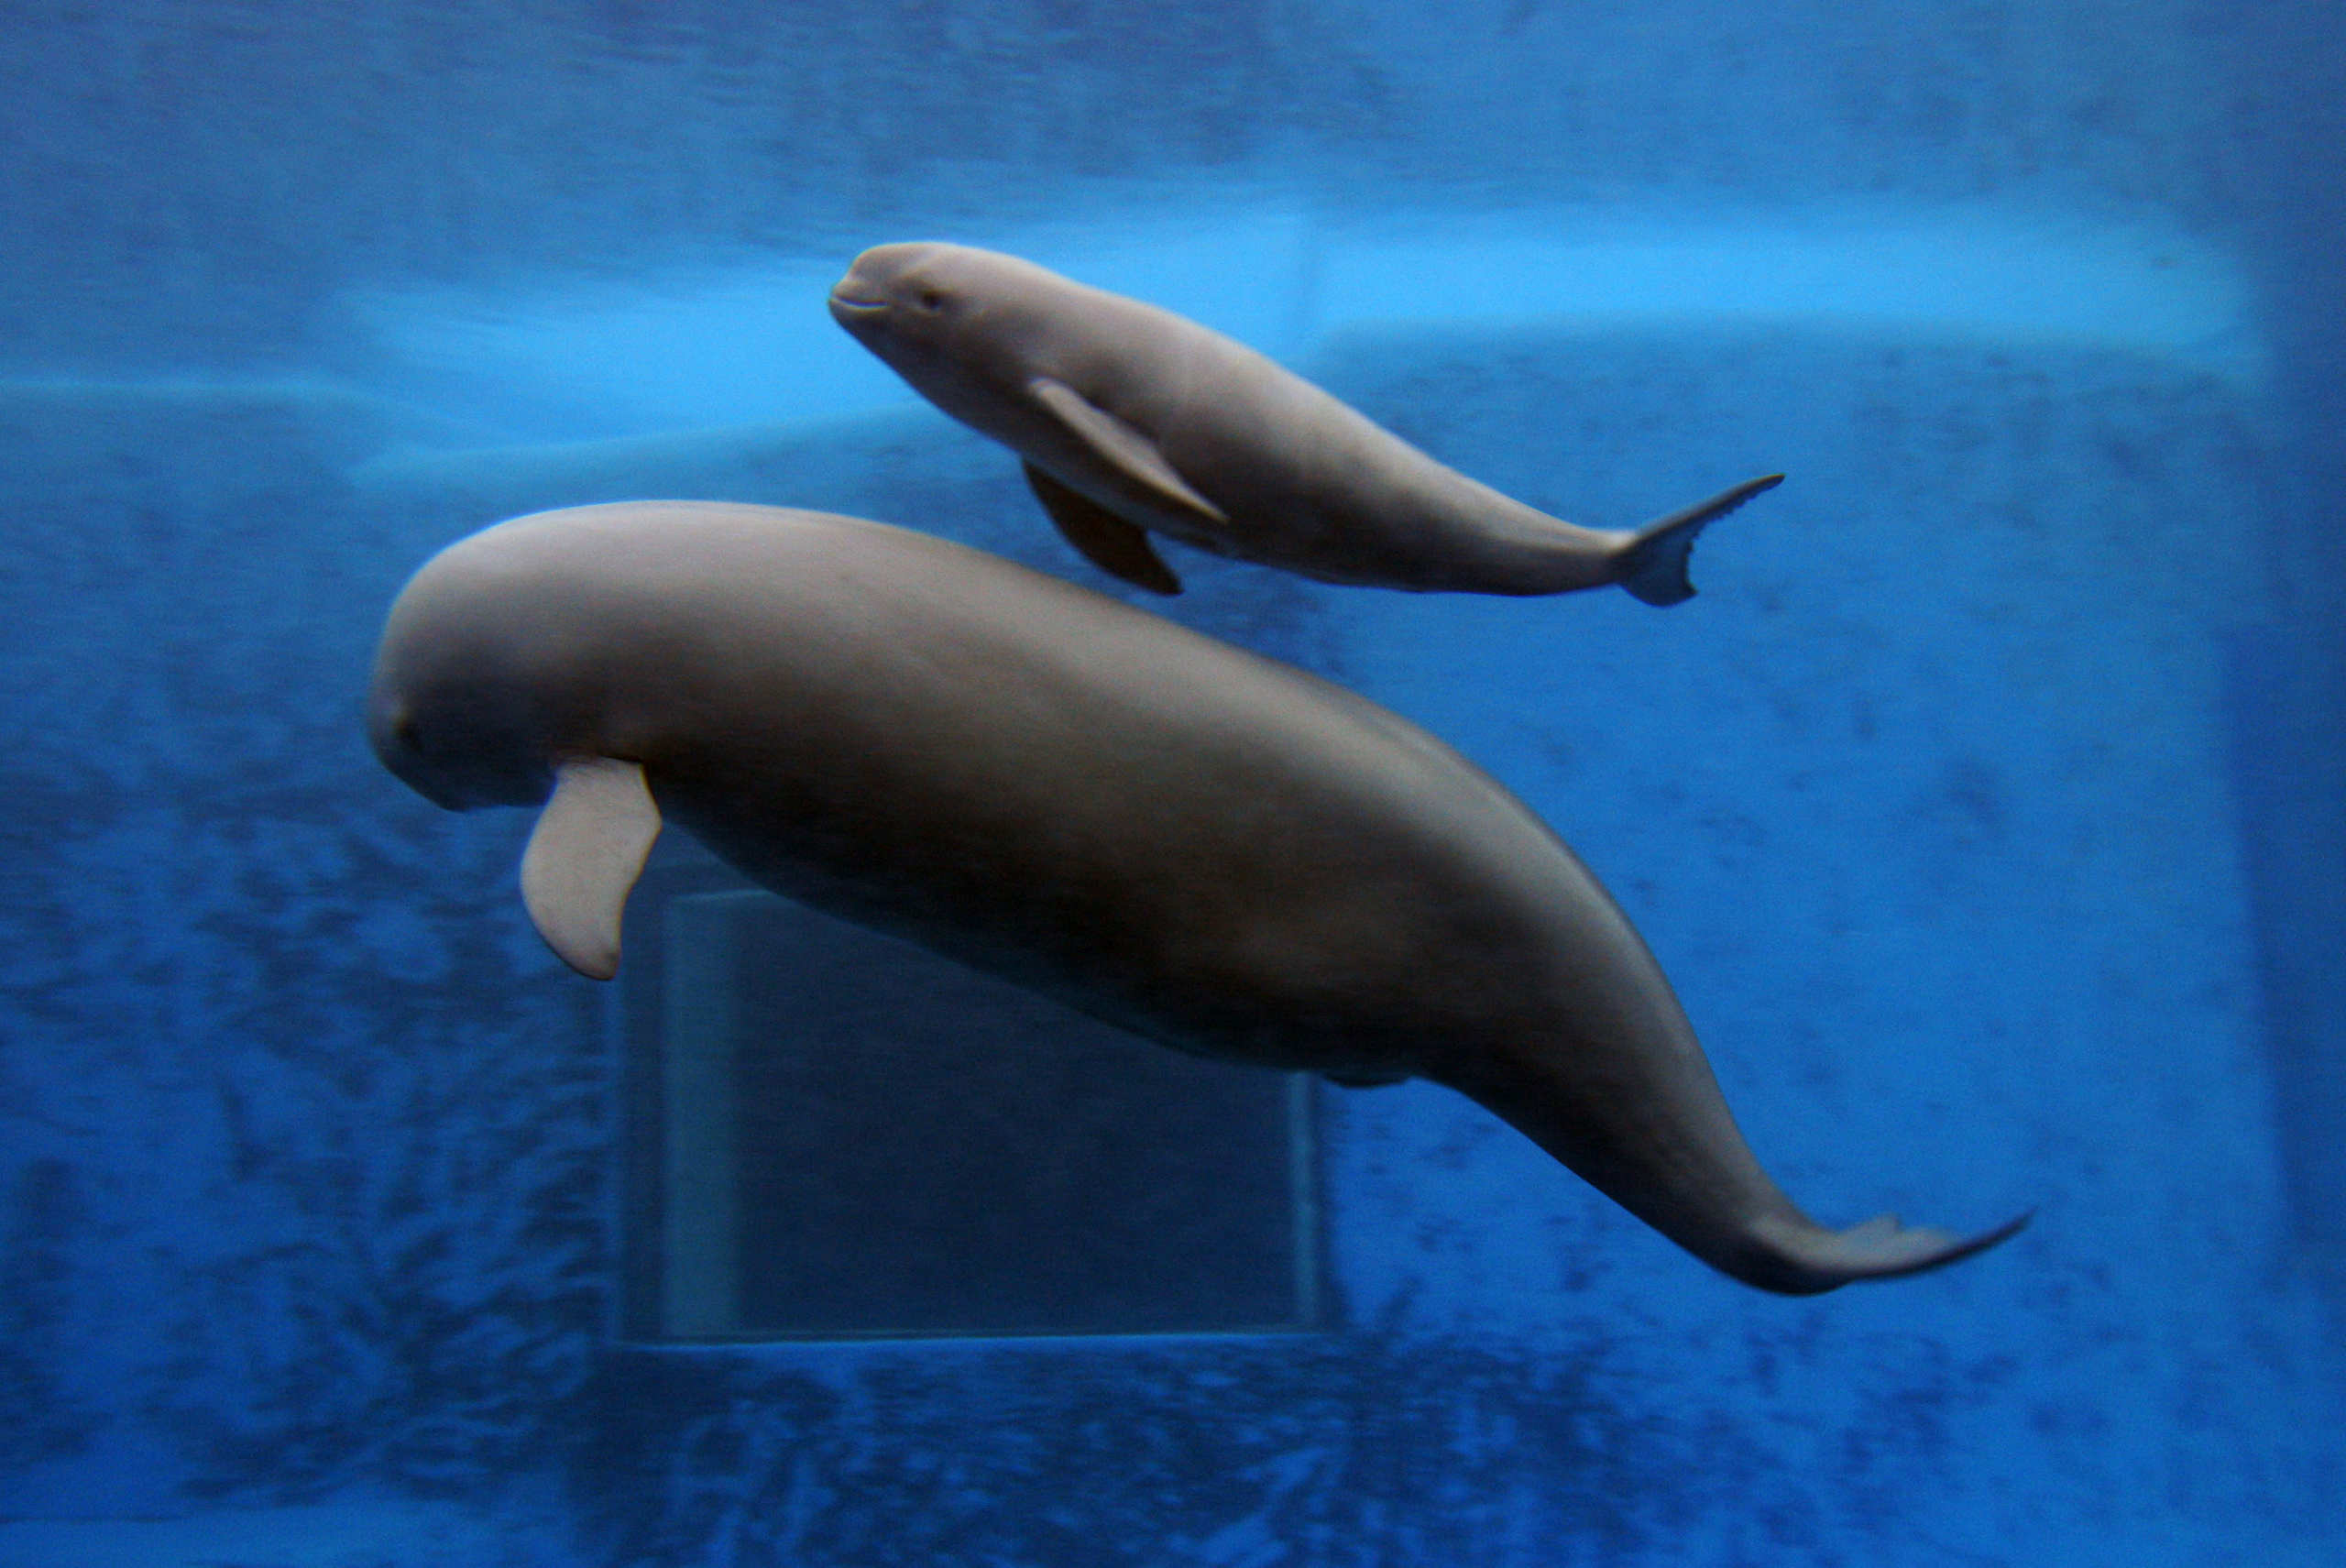 A newly born Yangtze Finless Porpoise swims with his mother at the Hydrobiology Institute of the Chinese Academy of Sciences in Wuhan of Hubei Province, China, June 3, 2007. The Yangtze finless porpoise is the only porpoise in the world that lives in freshwater and has a level of intelligence comparable to a gorilla. Due to overfishing of their food supply, pollution, and ship movement, there are only about 1500 of them left in the wild.